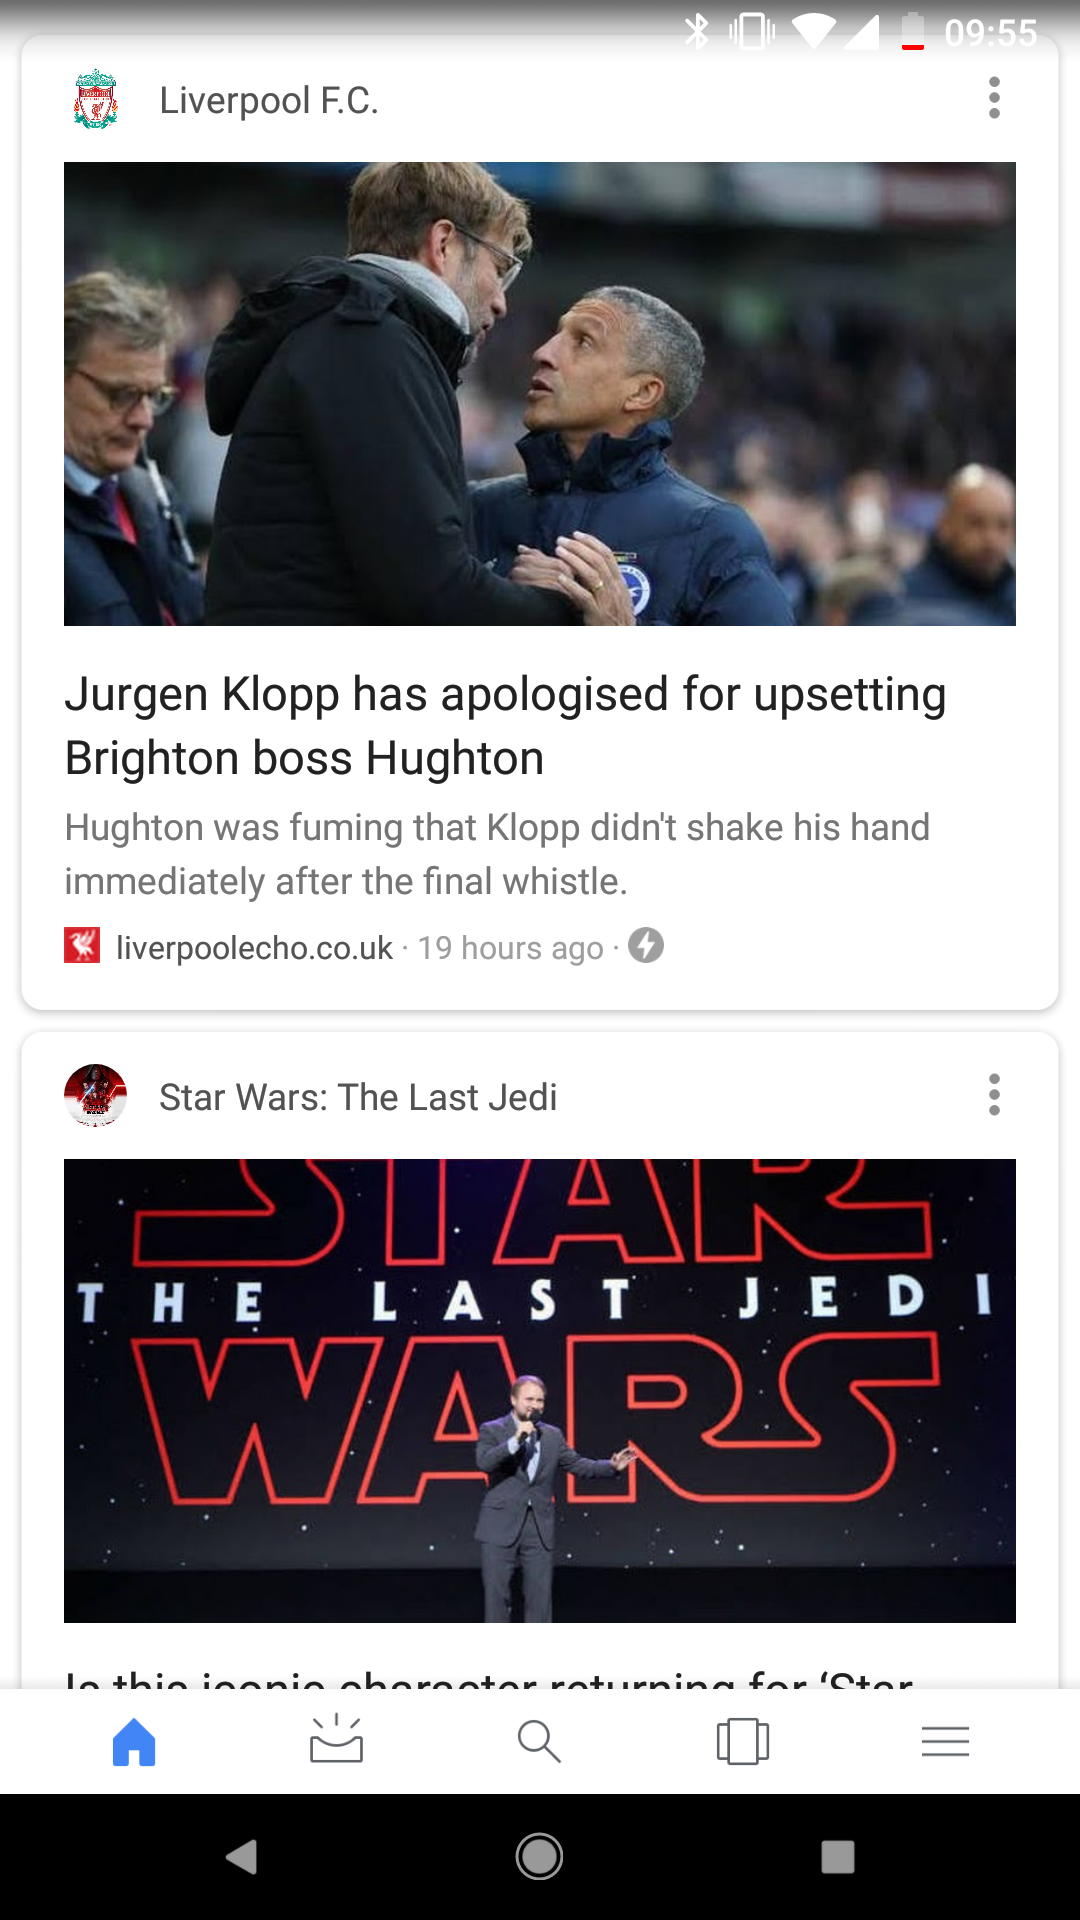 Google feed top stories screenshot